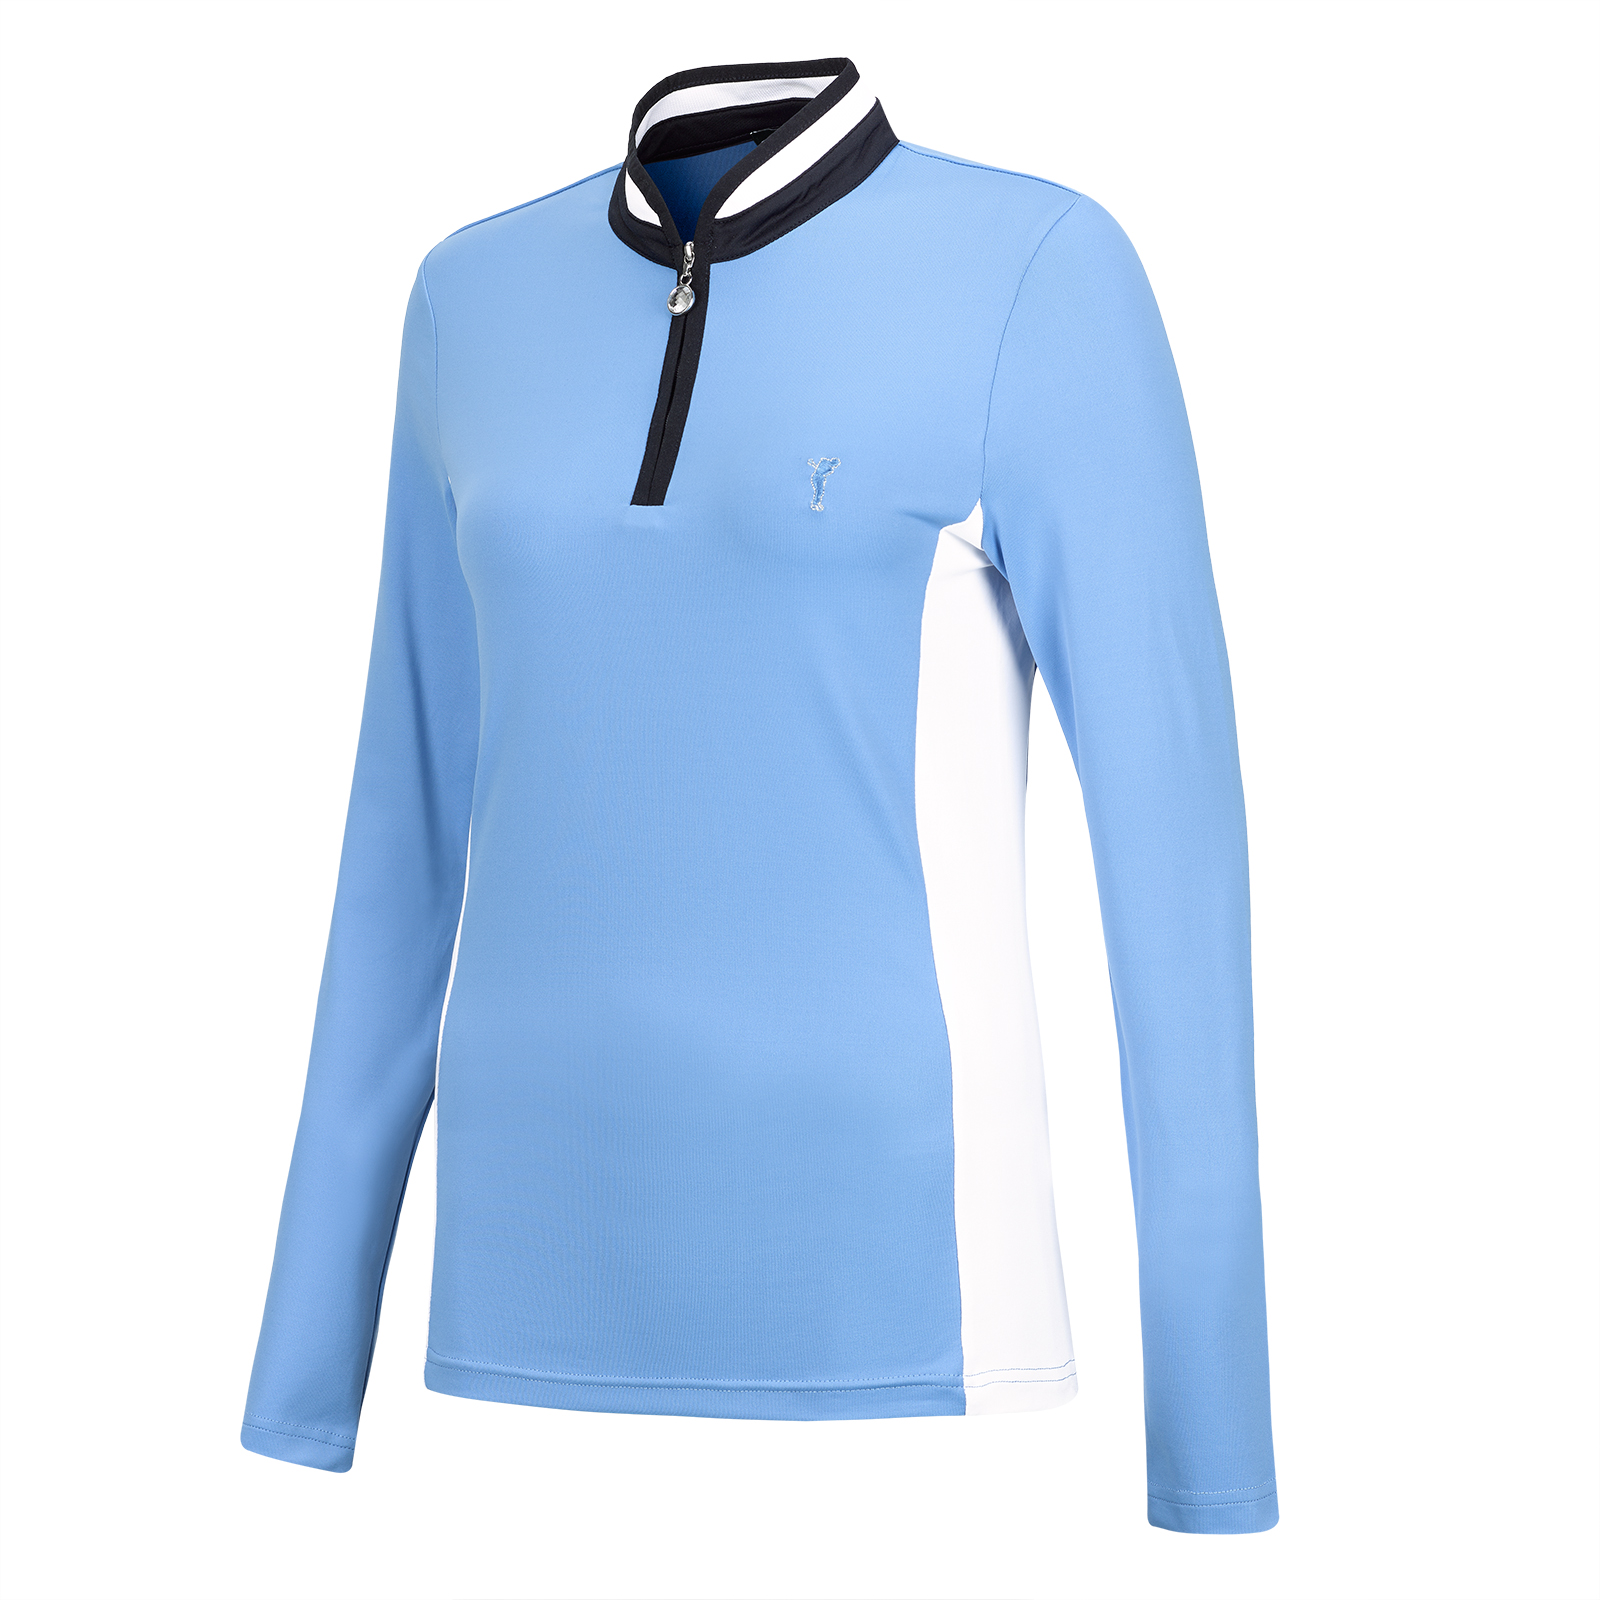 Langarm Lycra® Damen Golf-Troyer mit Moisture Management im Pro-Look